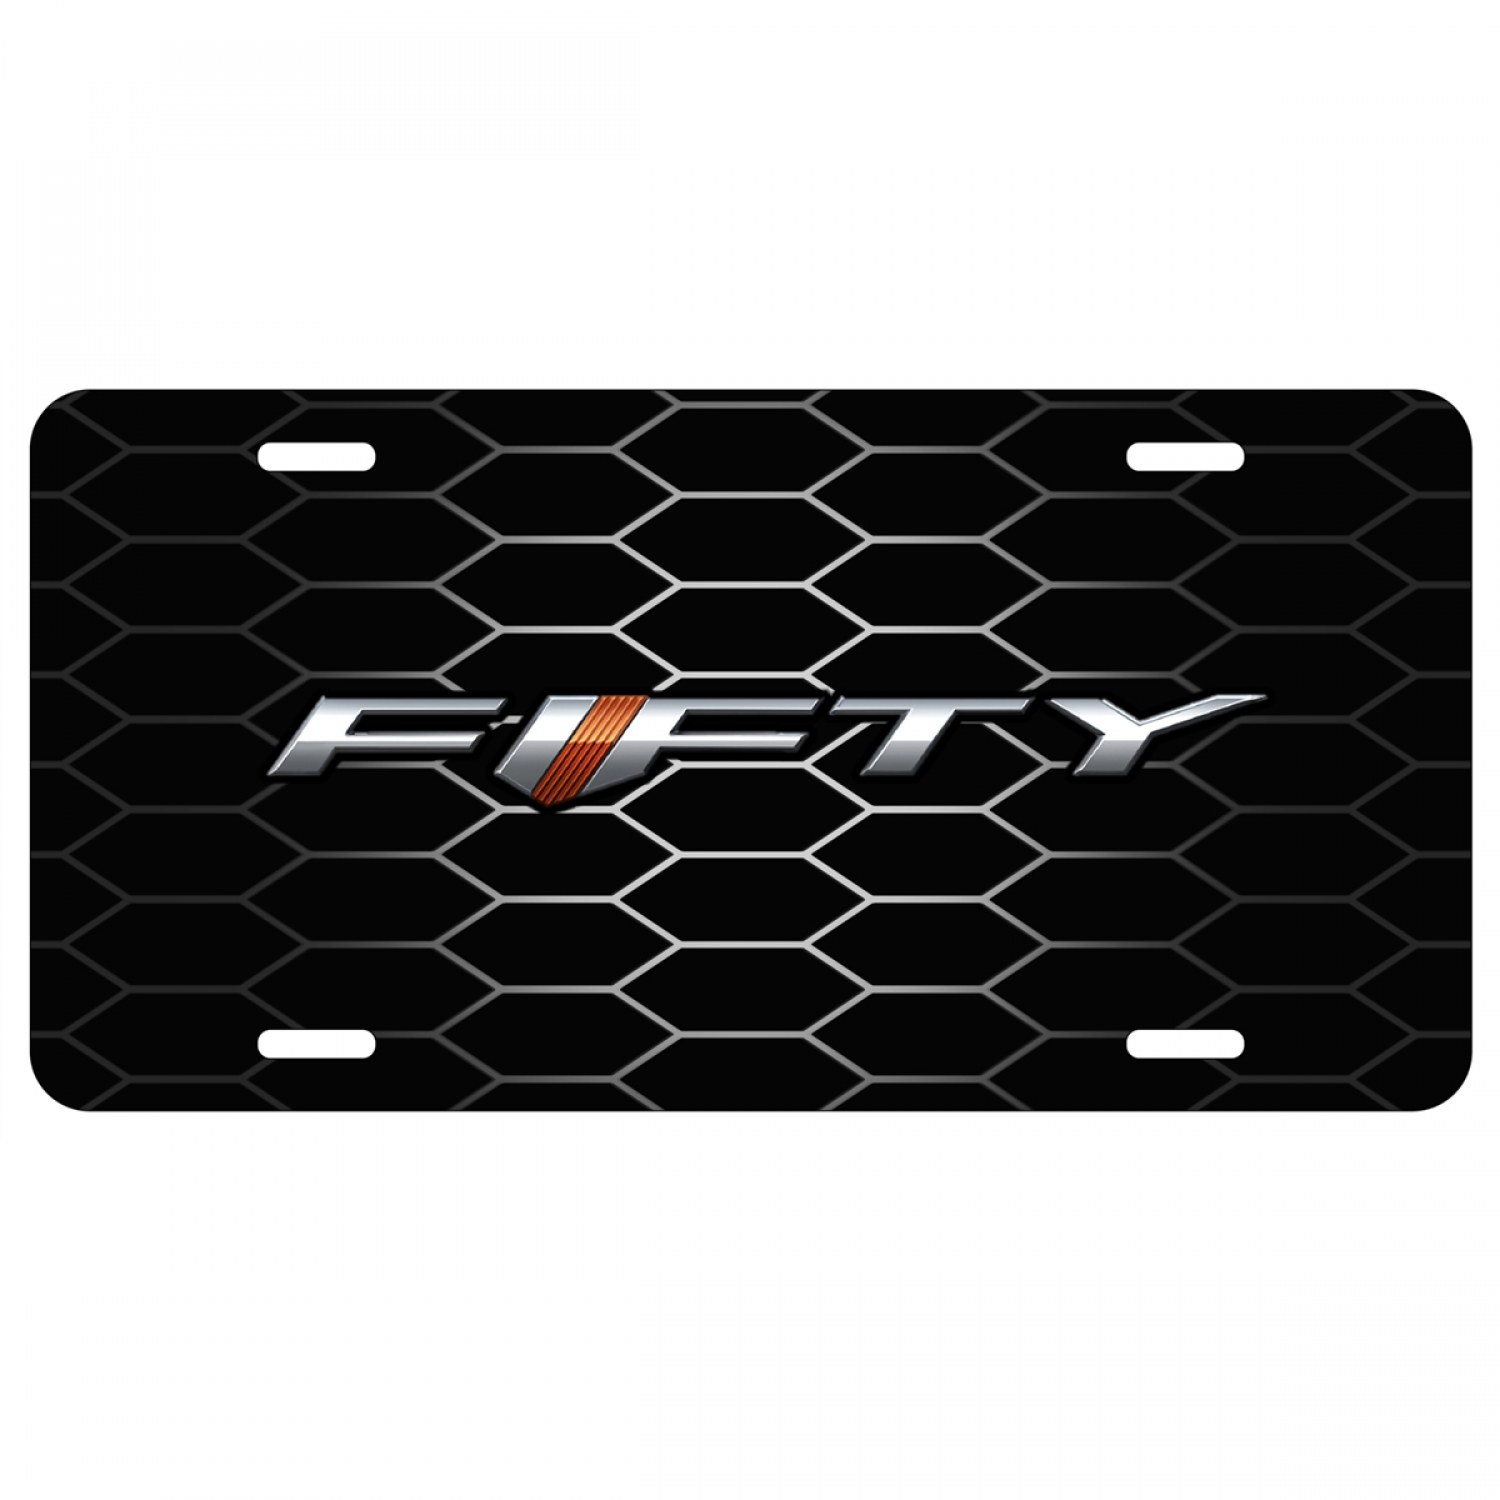 Chevrolet Camaro 50th Anniversary on Grill Graphic Aluminum License Plate